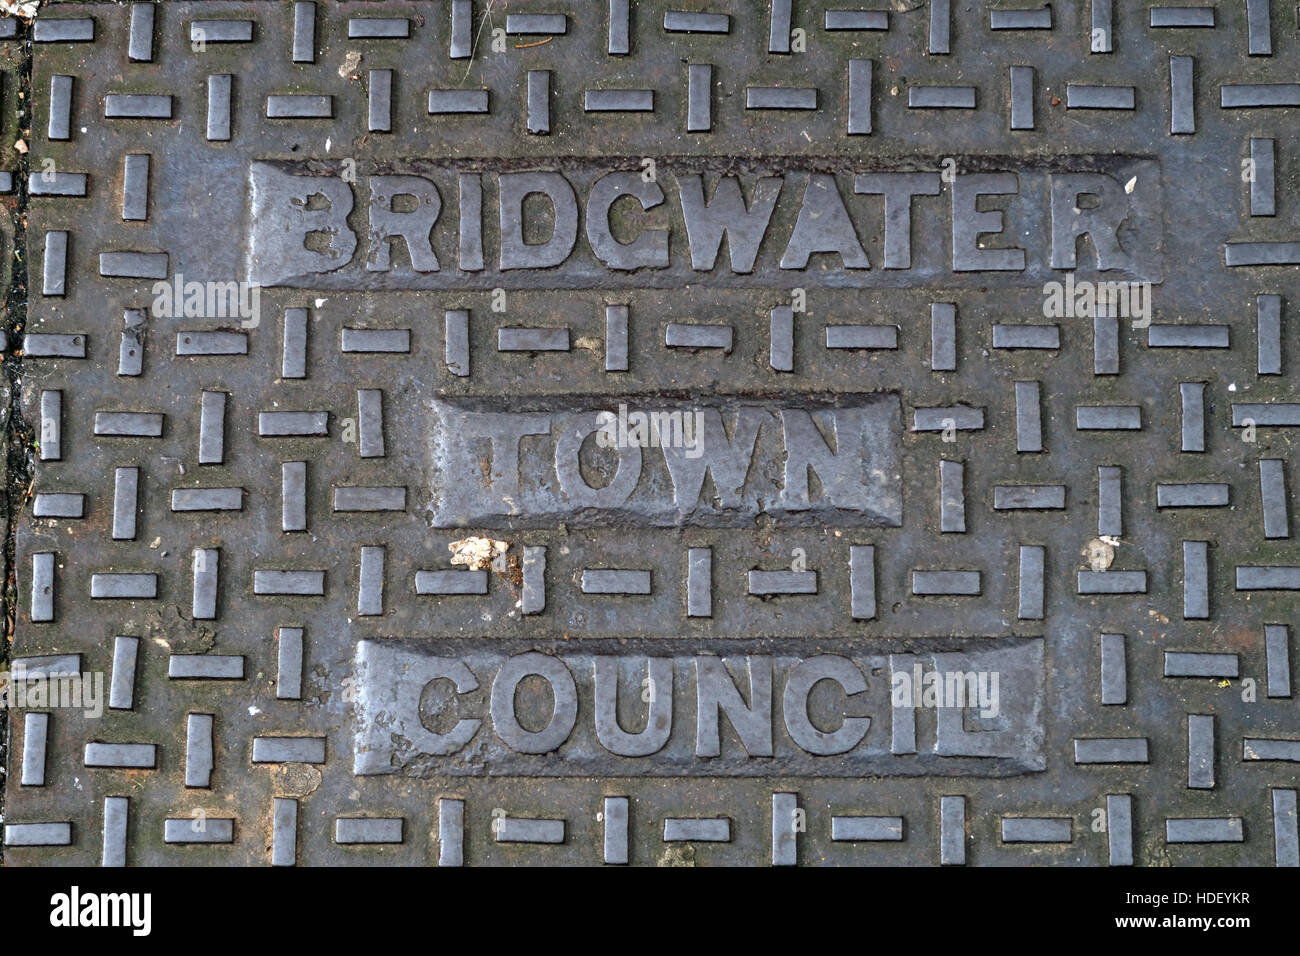 SDC,Sedgemoor,District,Council,Sedgemoor District Council,town council,steel,historic,manhole,man,hole,cover,access,north,North Somerset,county,Bridgewater,SW,England,town,Bridgwater Town,old,GoTonySmith,@HotpixUK,Tony,Smith,UK,GB,Great,Britain,United,Kingdom,English,British,England,problem,with,problem with,issue with,Buy Pictures of,Buy Images Of,Images of,Stock Images,Tony Smith,United Kingdom,Great Britain,British Isles